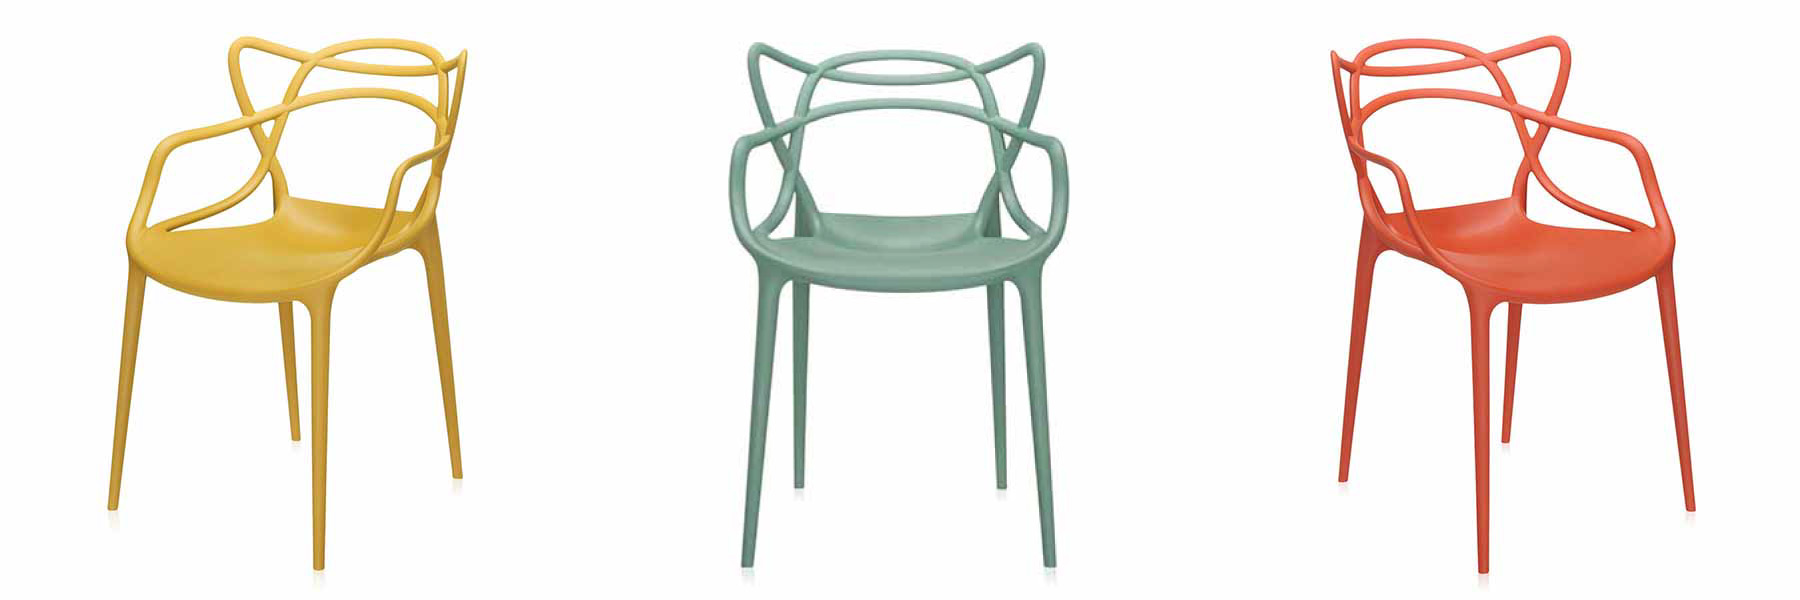 masters-chair-kartell-heals